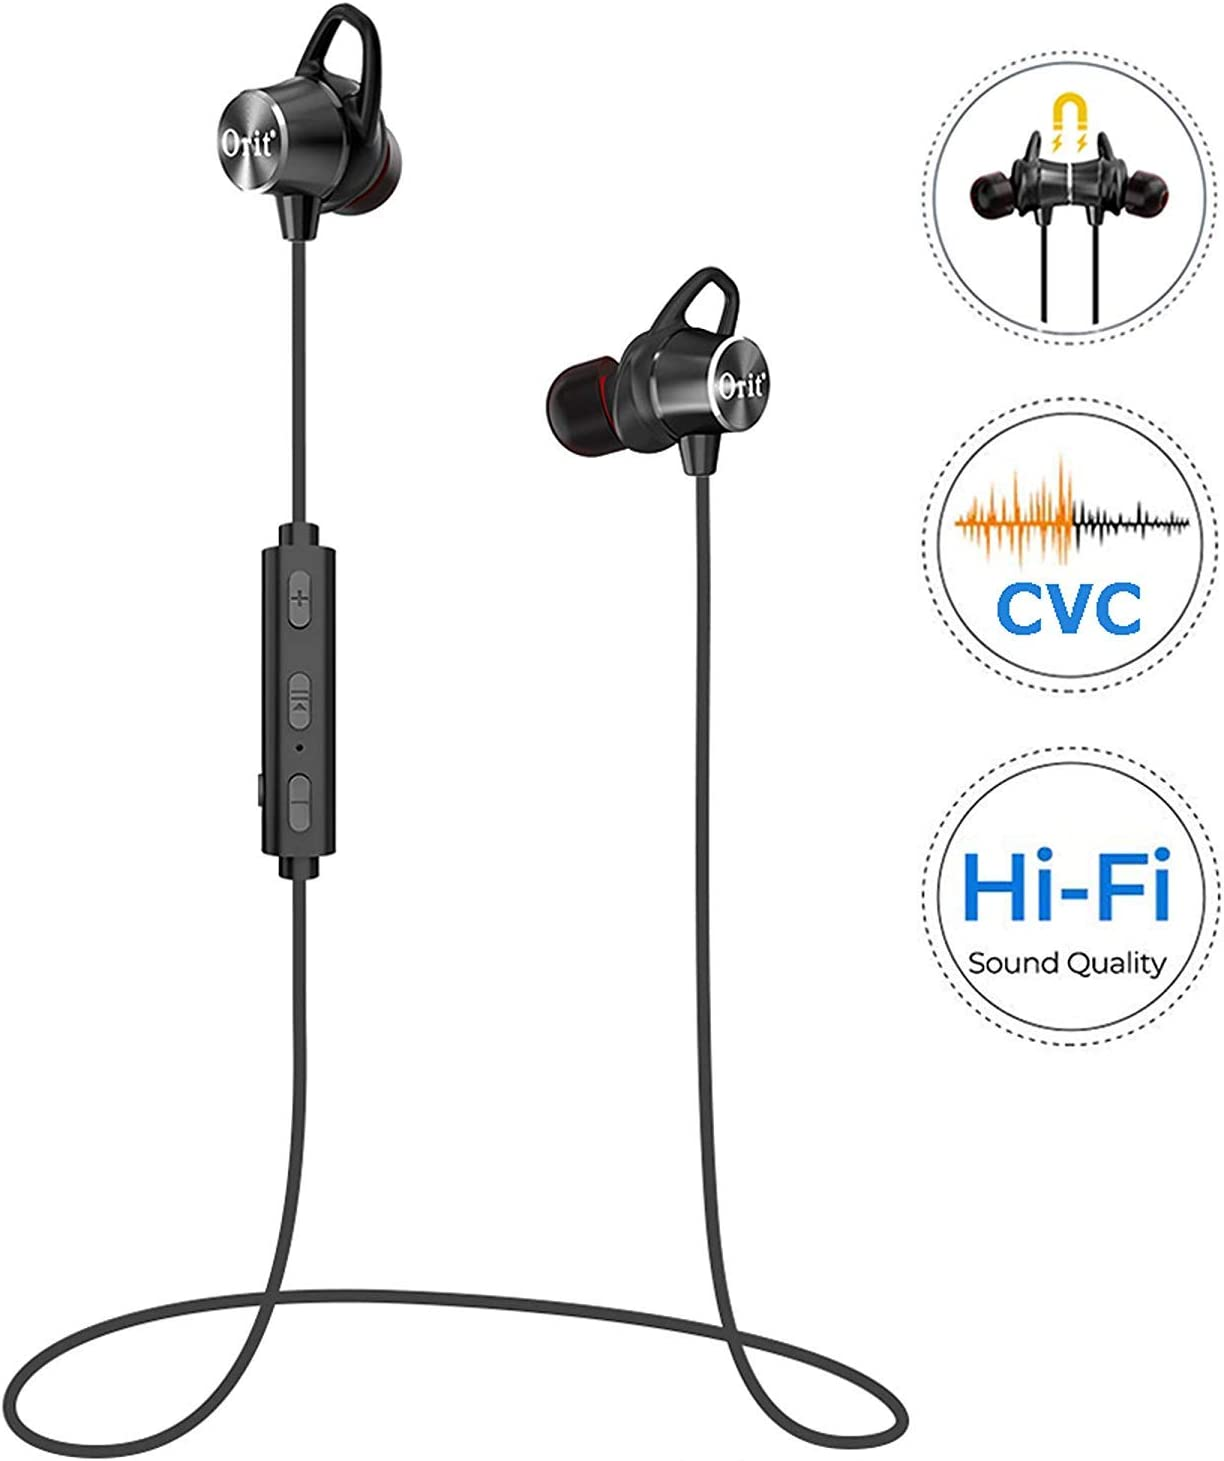 Wireless Headphones Sport, Bluetooth Earbuds with Mic Sweatproof Super Bass and Noise Cancelling Magnetic Earphones with Removable Ear Hook Cancellation for Cell Phones Workout Running 9H Playtime